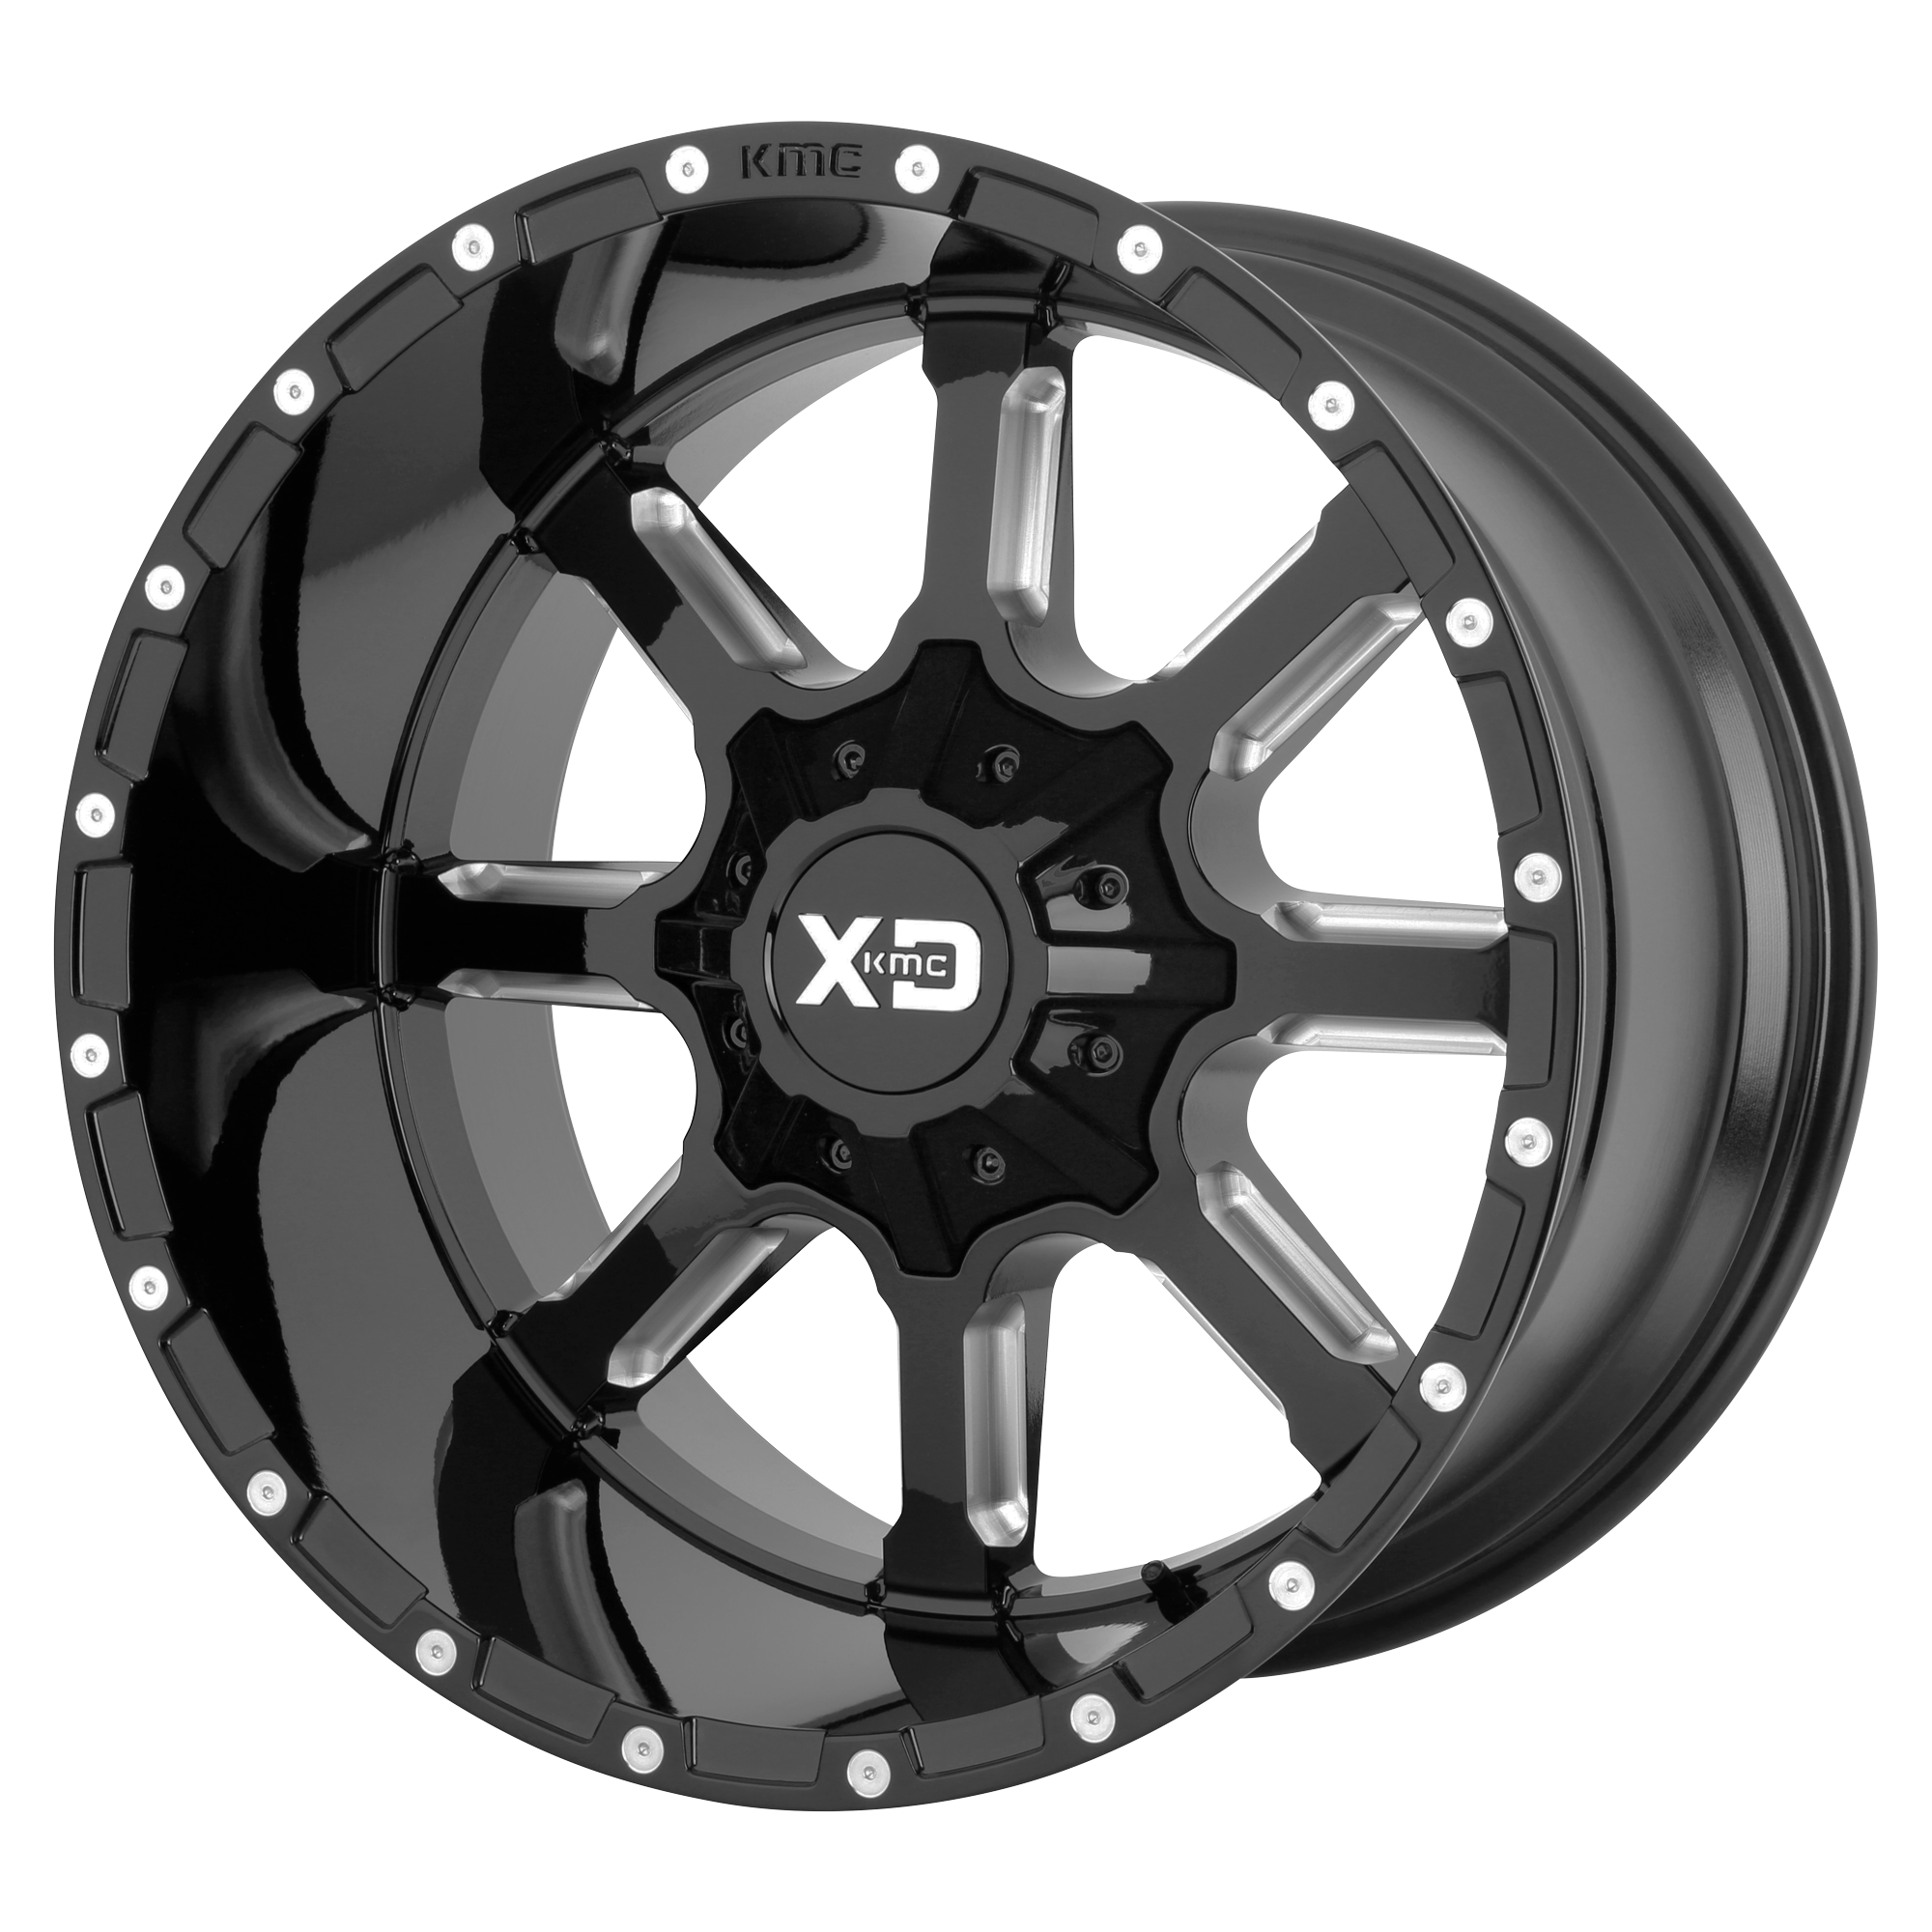 XD Series by KMC Wheels MAMMOTH Gloss Black Milled